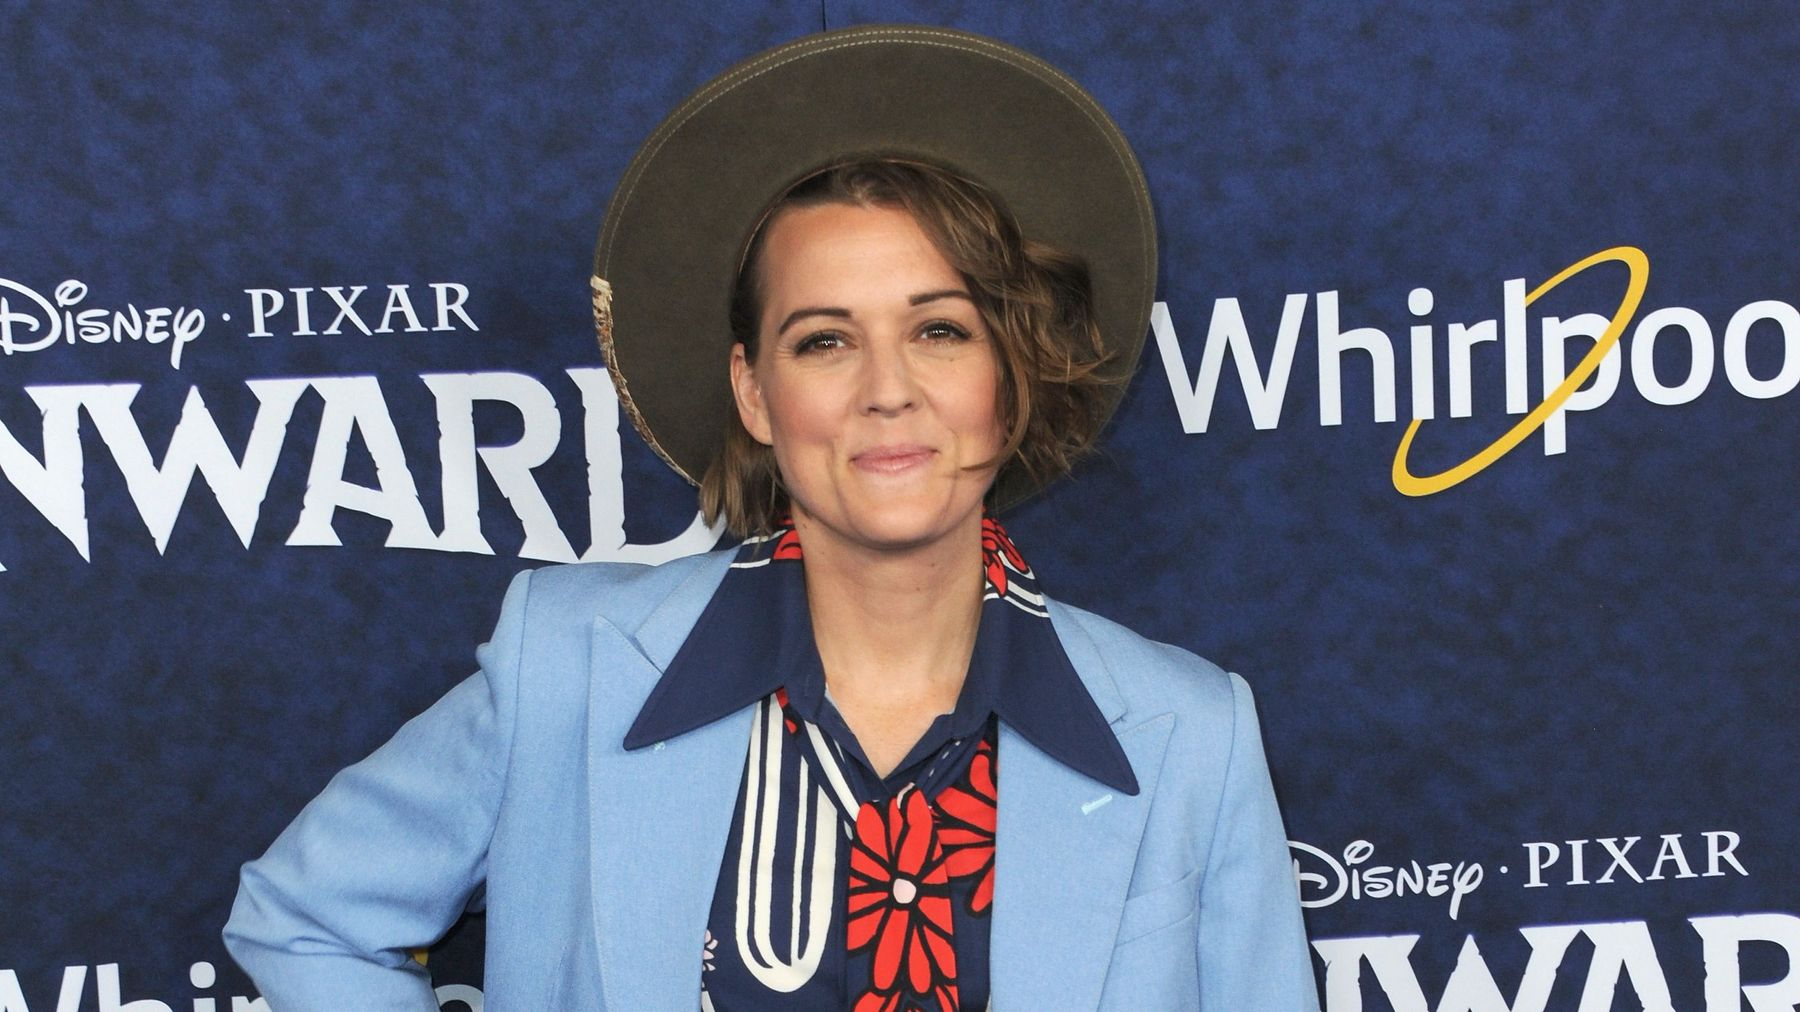 Brandi Carlile's Concert Raises Over $100K For Rainey Day Fund, Color Me Country Fund & Fanny's School Of Music